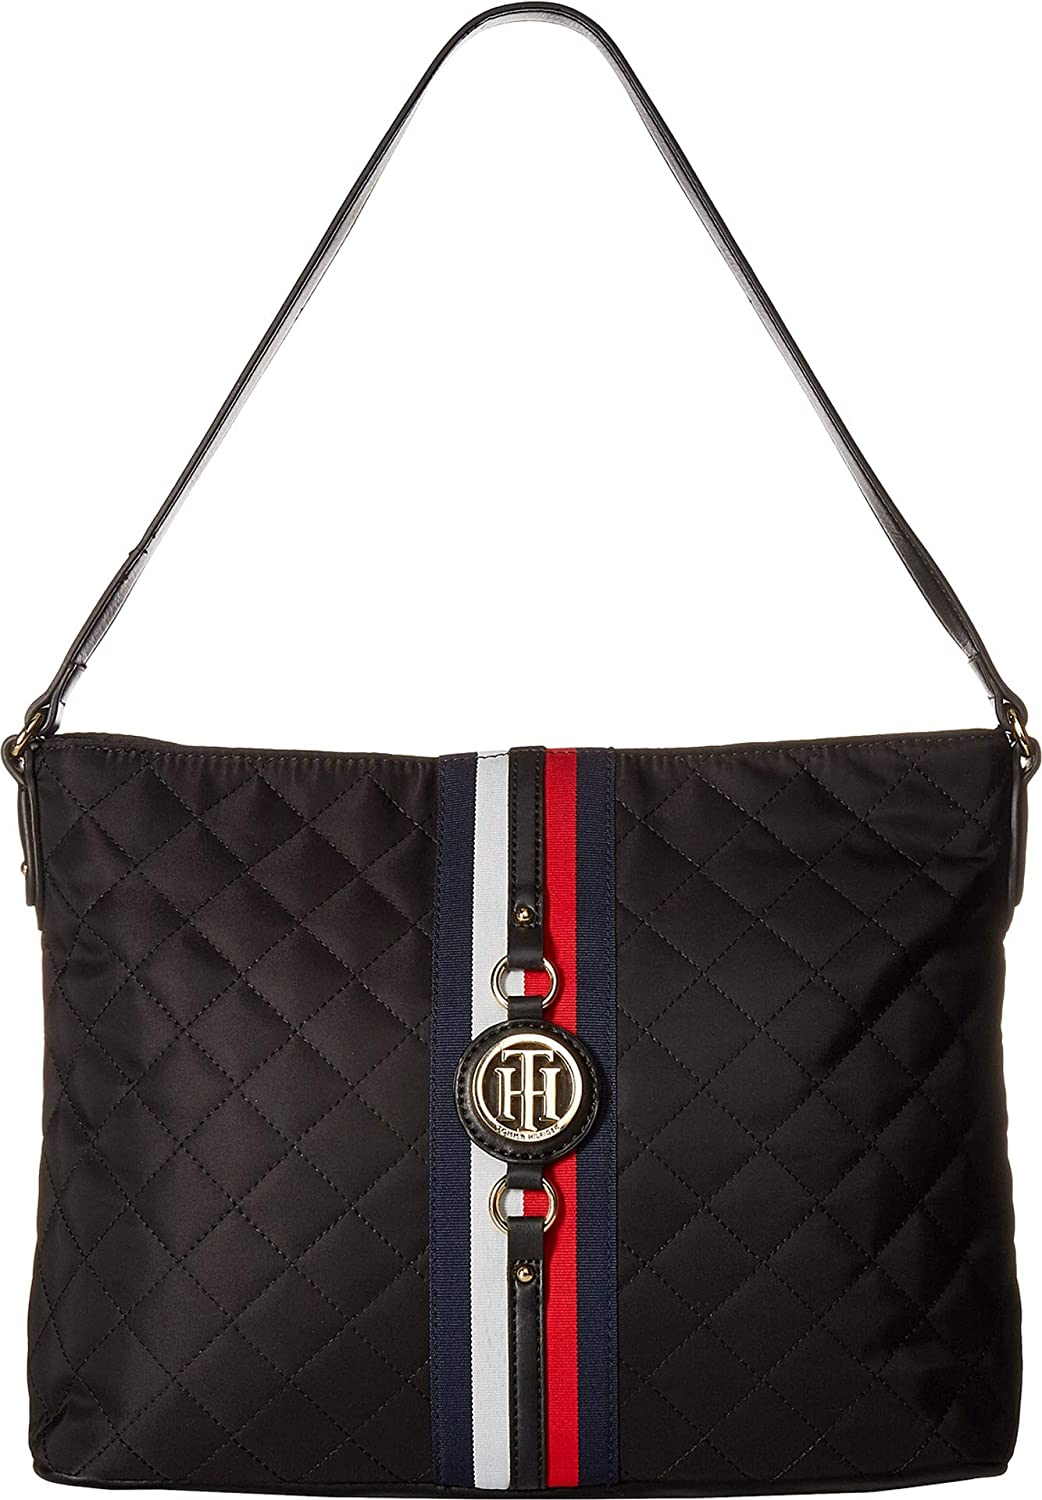 f62bdad9b6 Amazon.com: Tommy Hilfiger Women's Jaden Hobo Quilted Nylon Black One Size:  Shoes